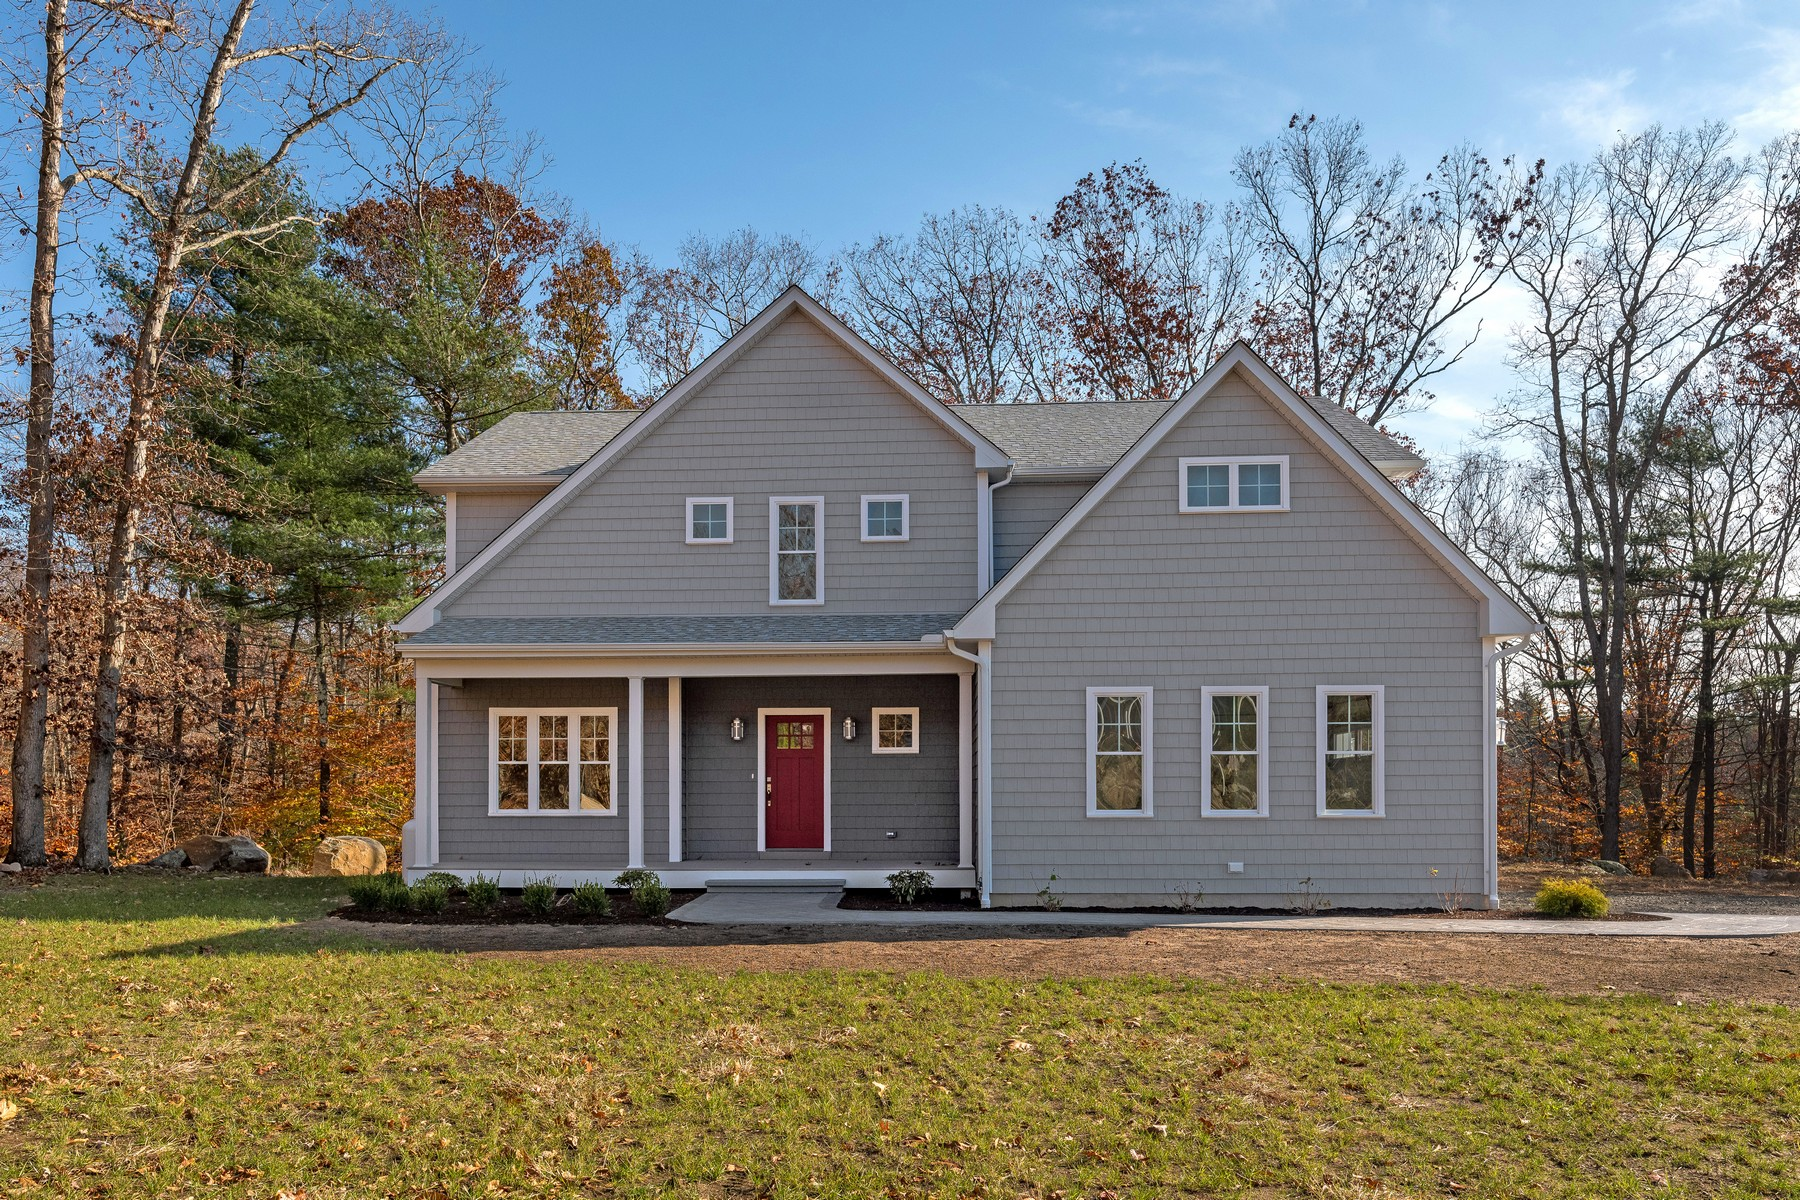 Single Family Homes for Sale at Walnut Hill - A Collection of 9 Homes 1 Farm Meadow Road East Lyme, Connecticut 06333 United States